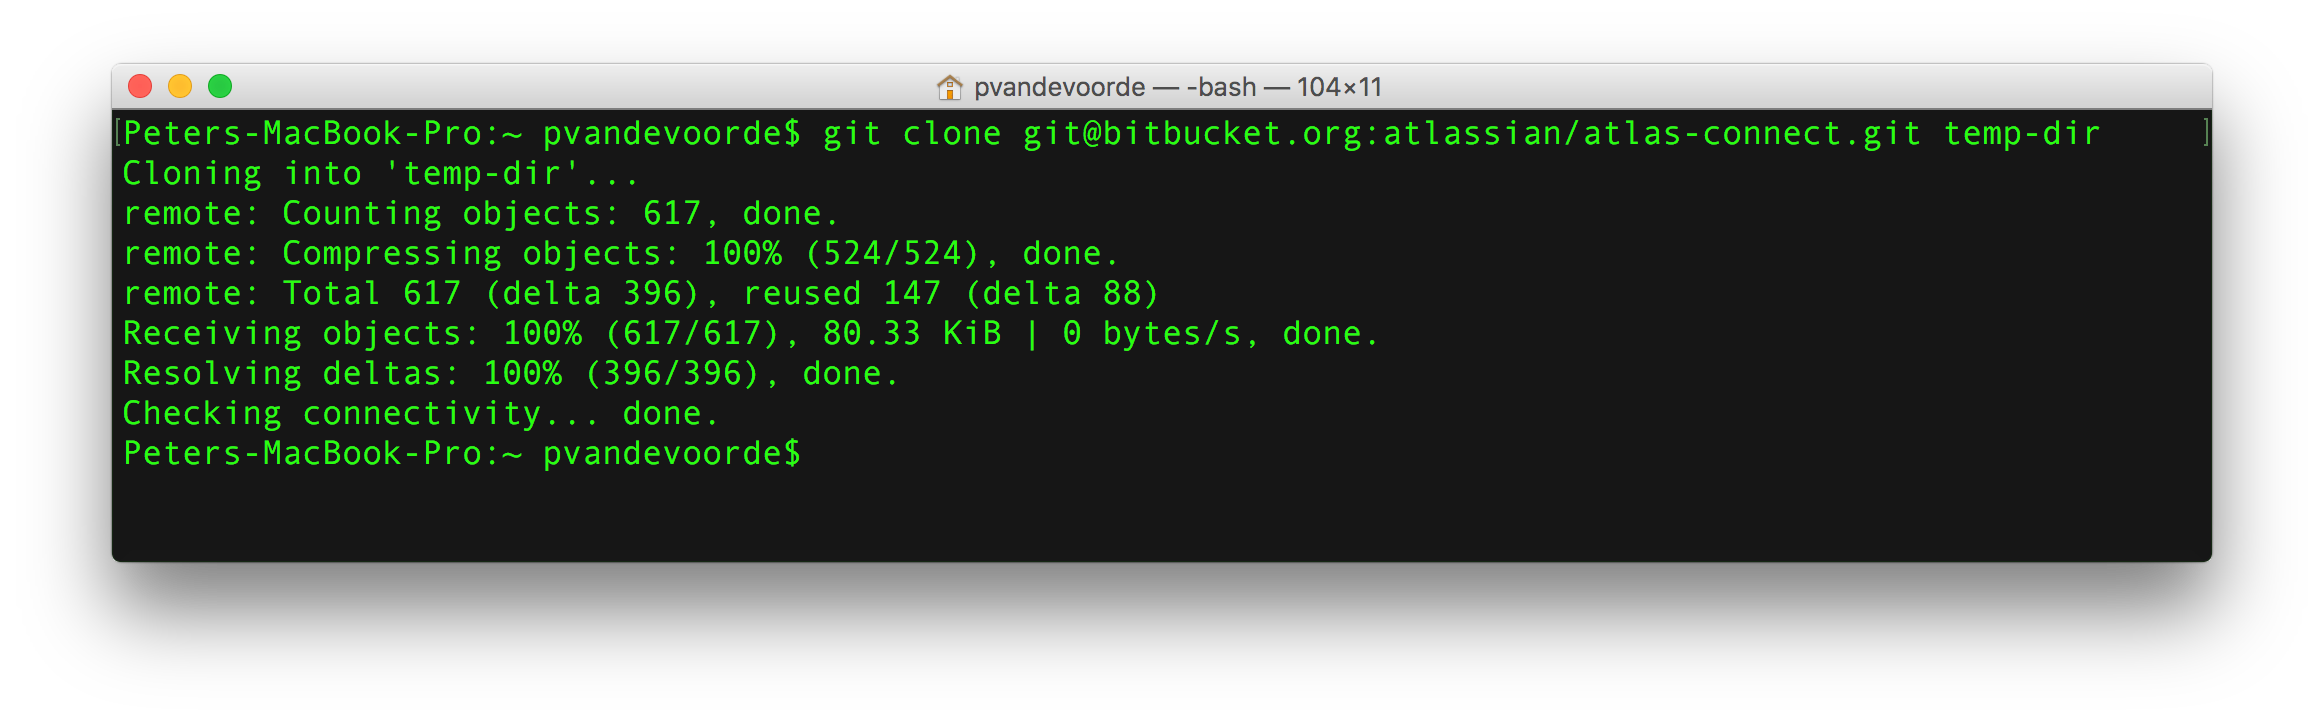 How to move a git repository with history   Atlassian Git